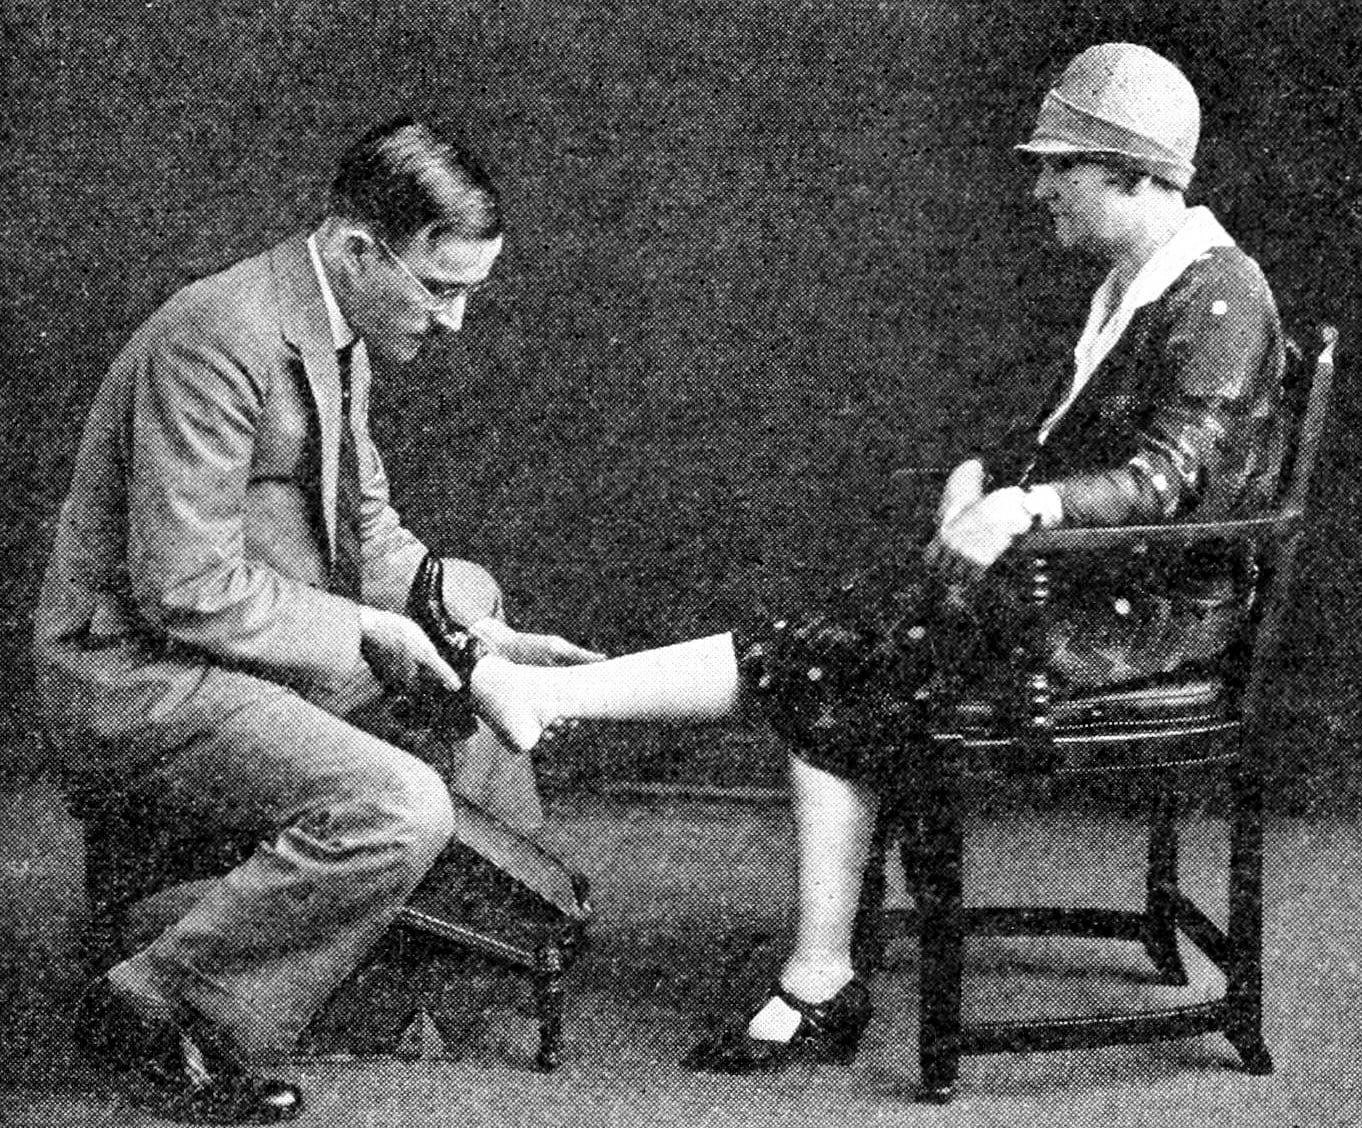 Trying on shoes in the 1920s